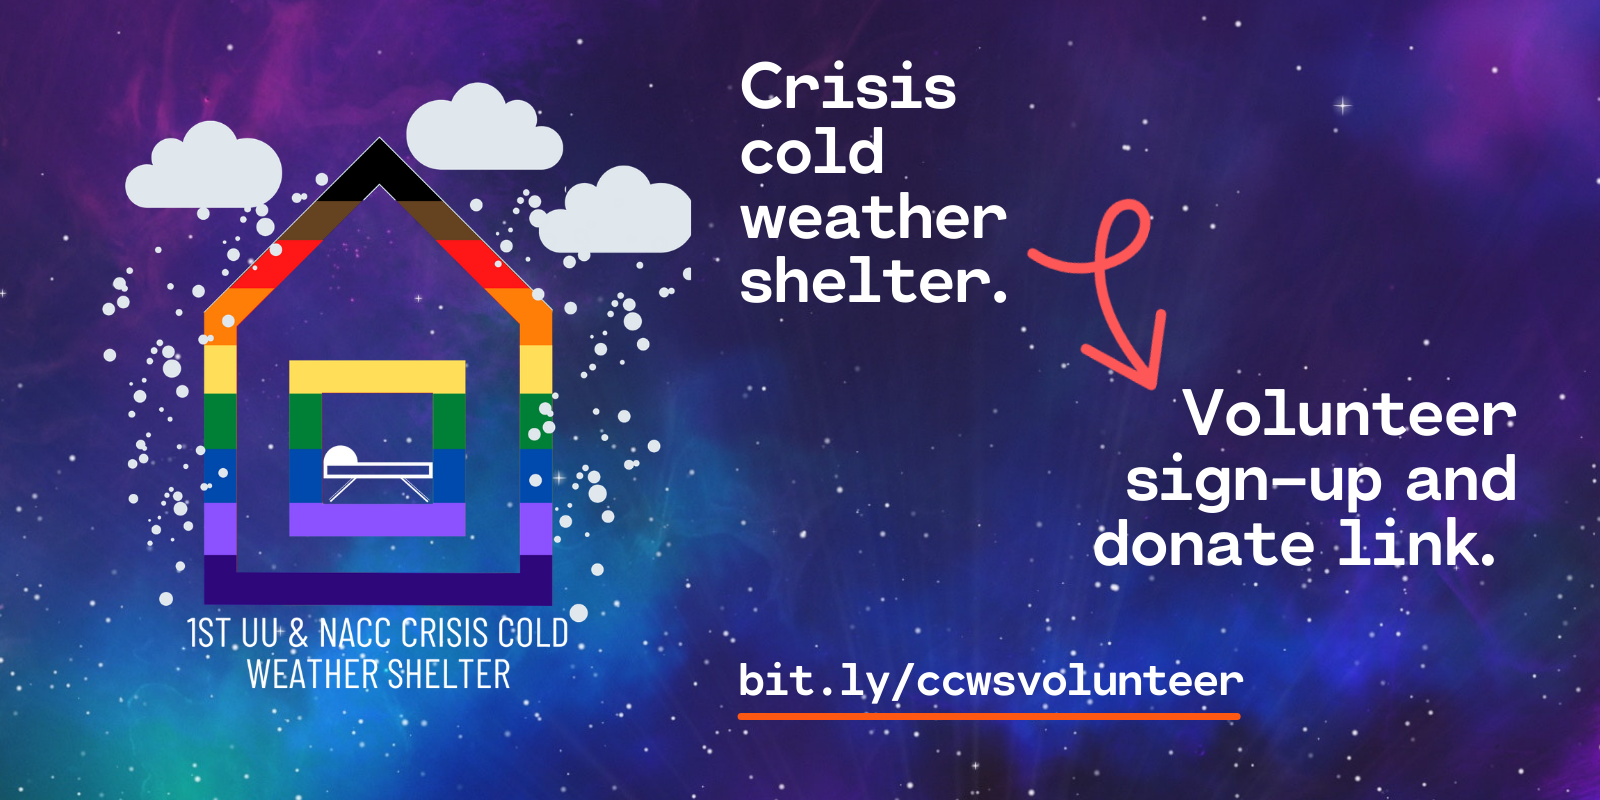 Copy of Crisis cold weather shelter.